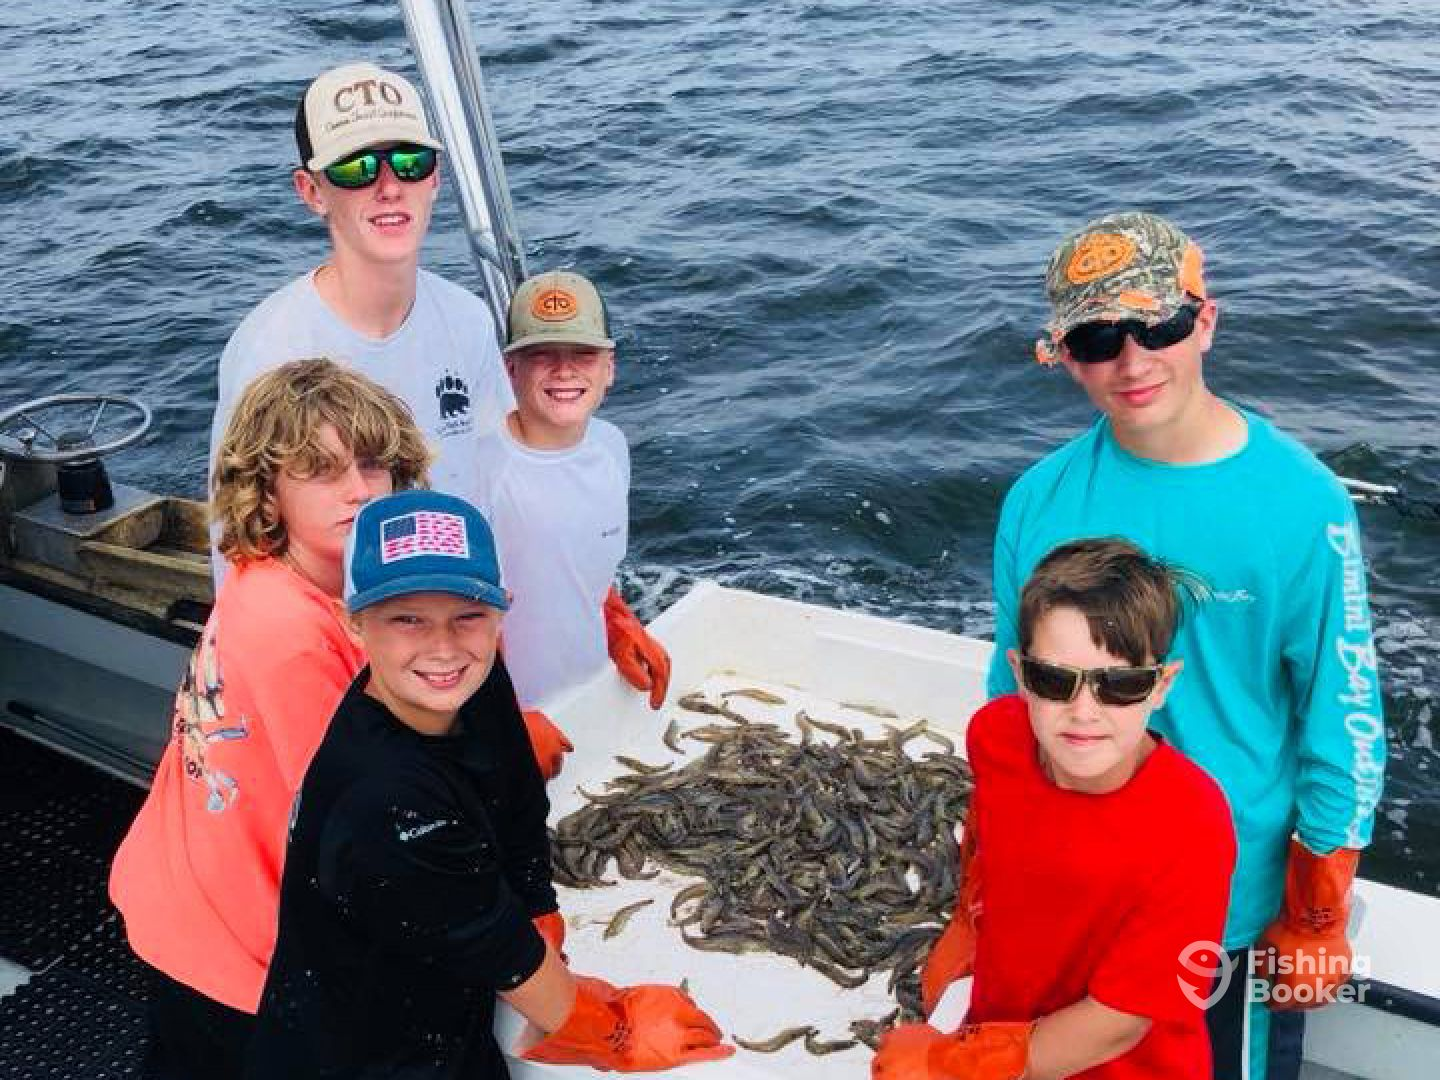 OBX Fishing Outfitters